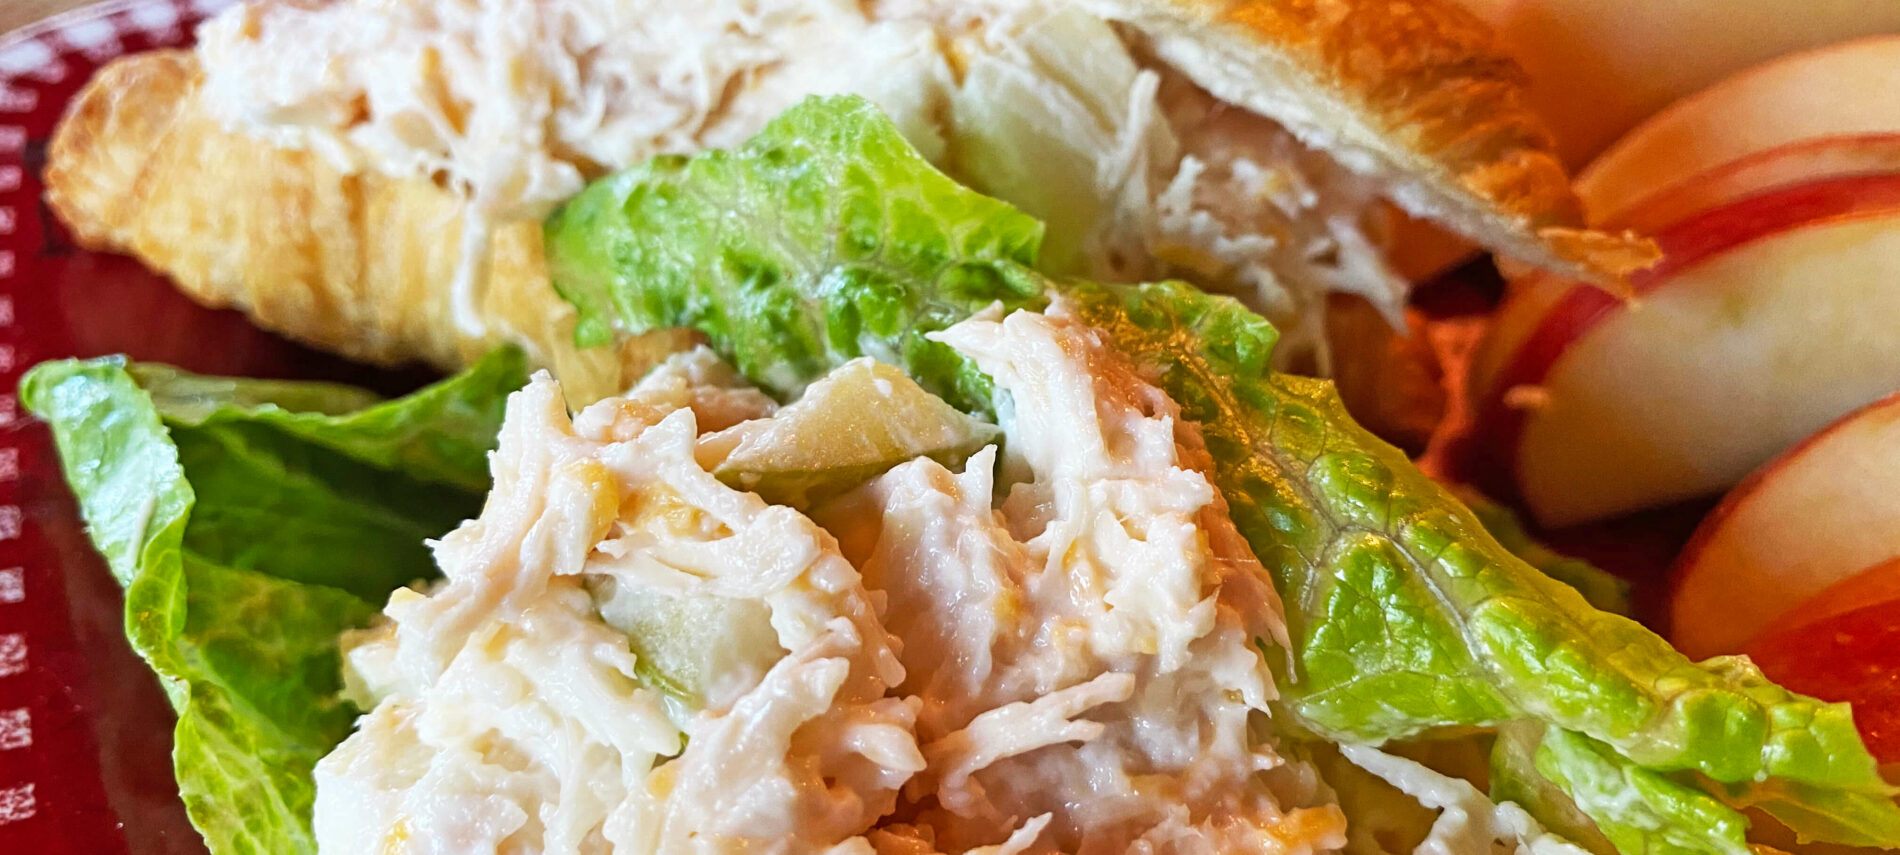 Chicken Salad on lettuce and croissants